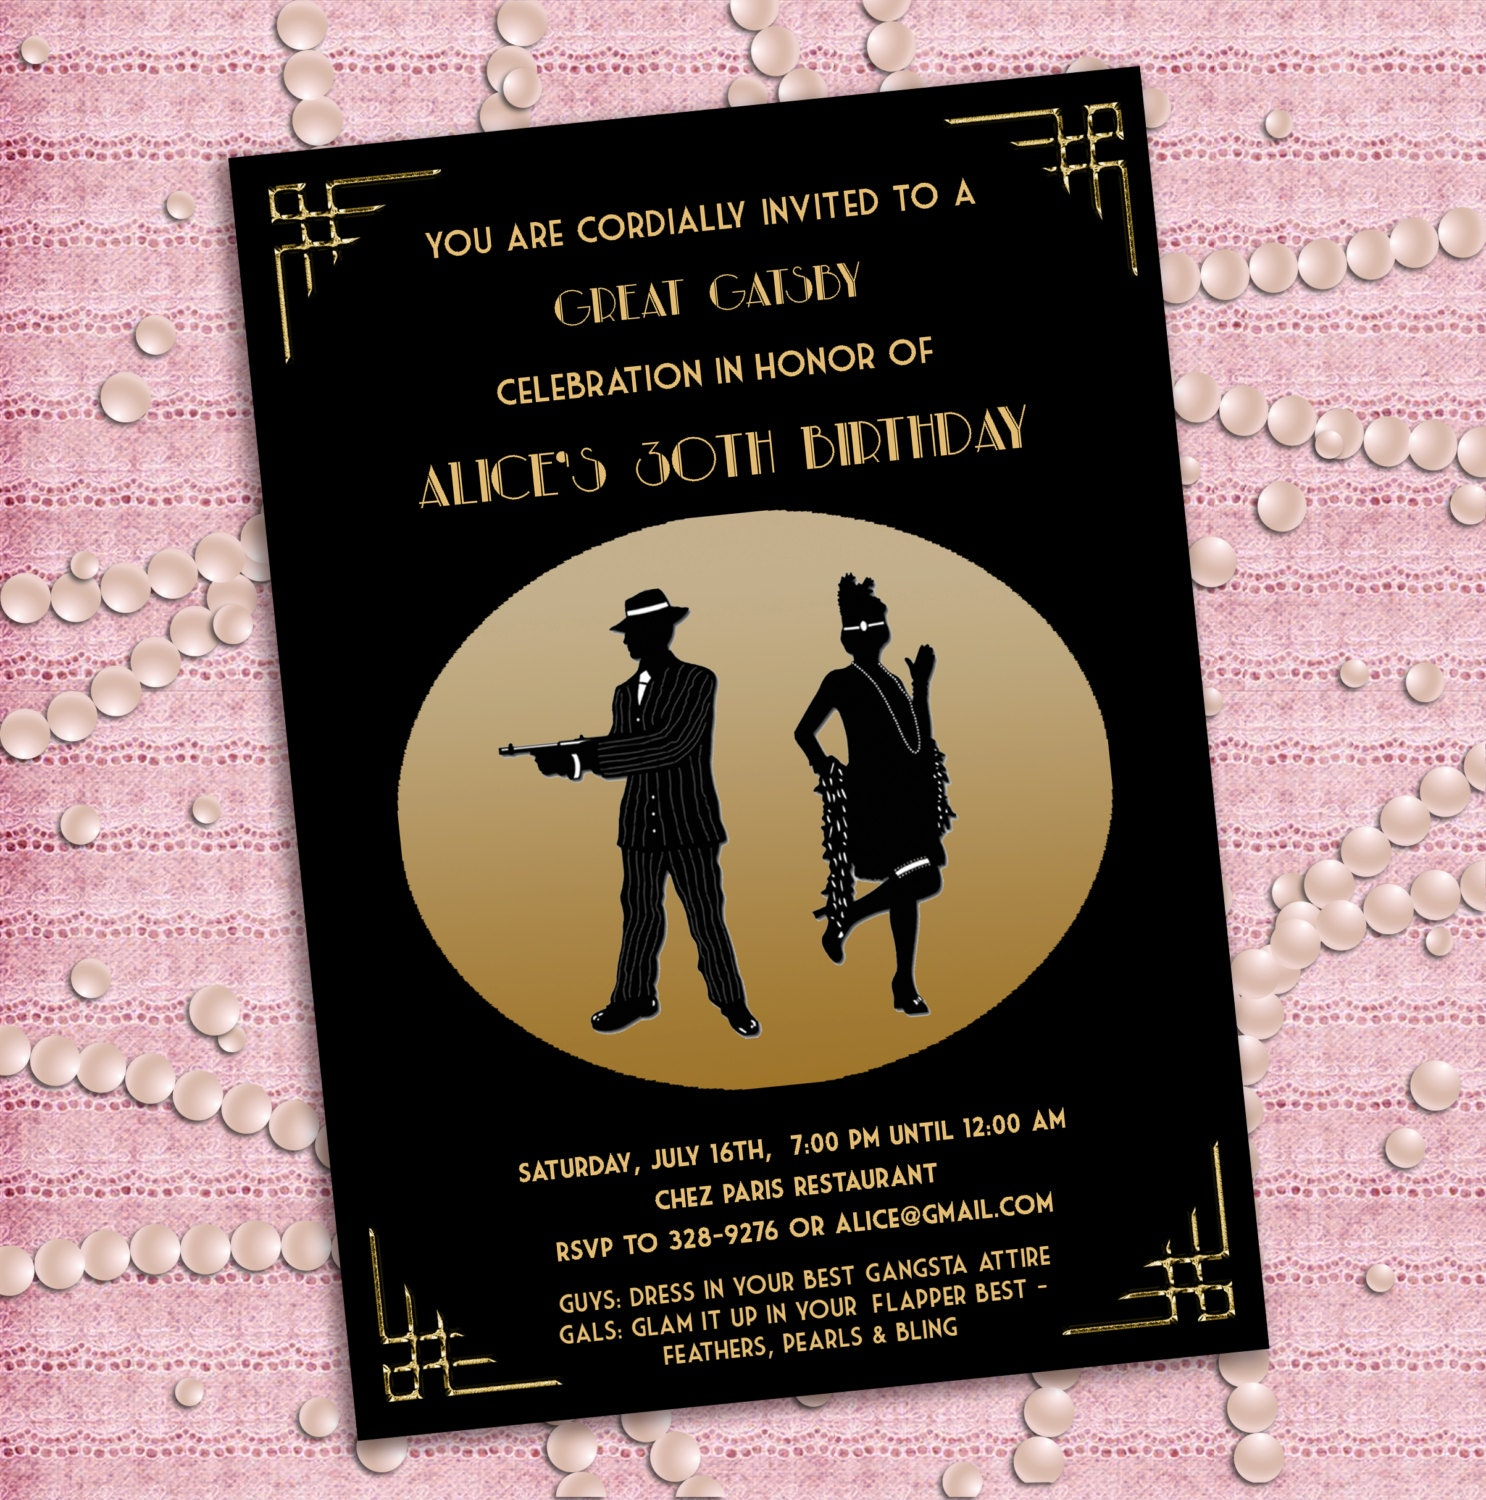 It's just a picture of Clean Gatsby Party Invitations